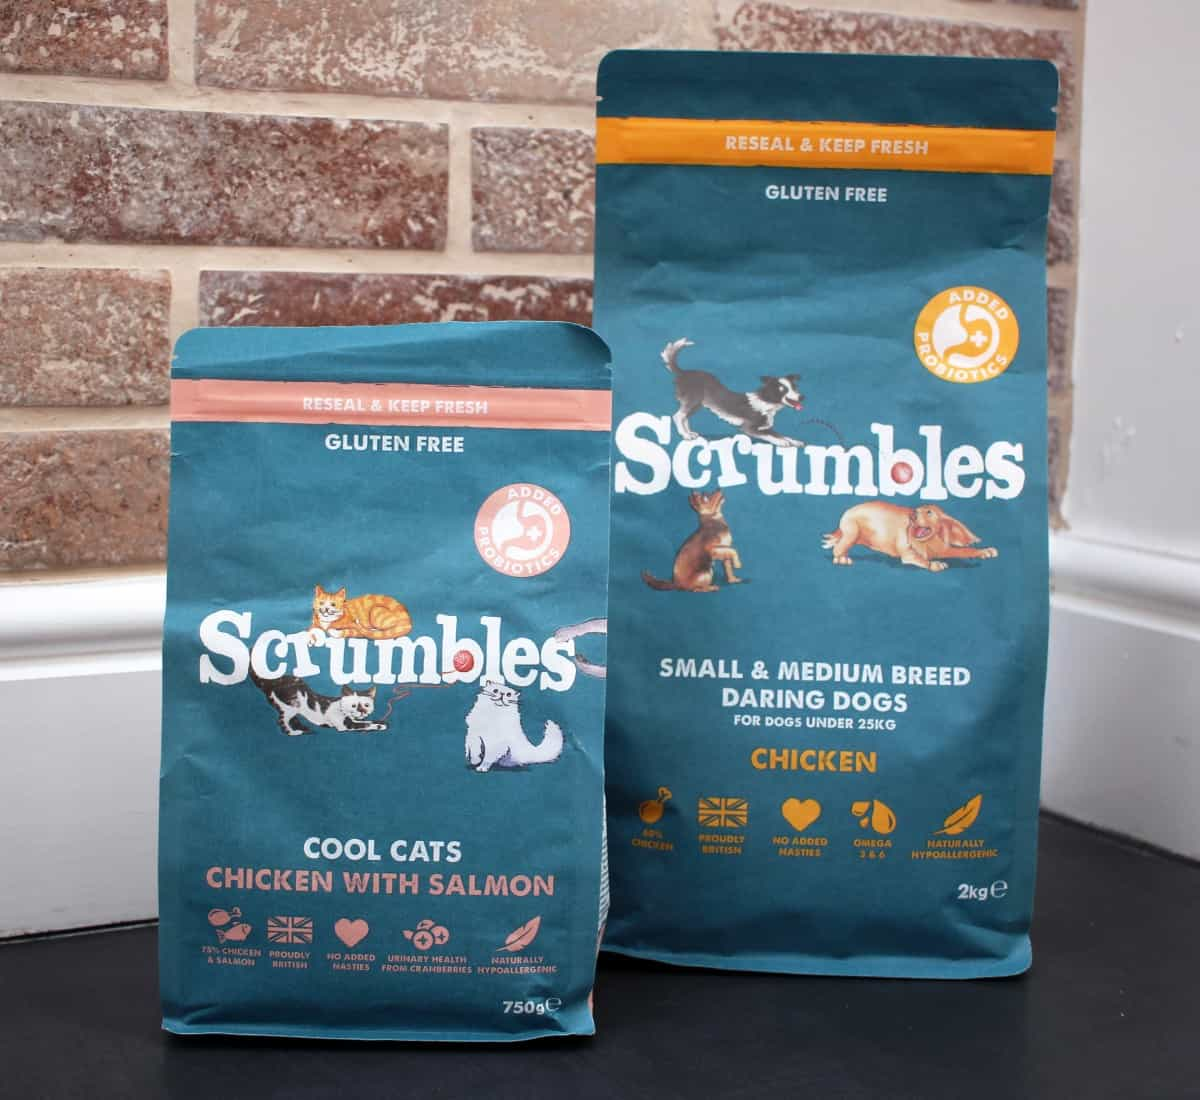 A Healthier Choice for Pets from Scrumbles - and Win!